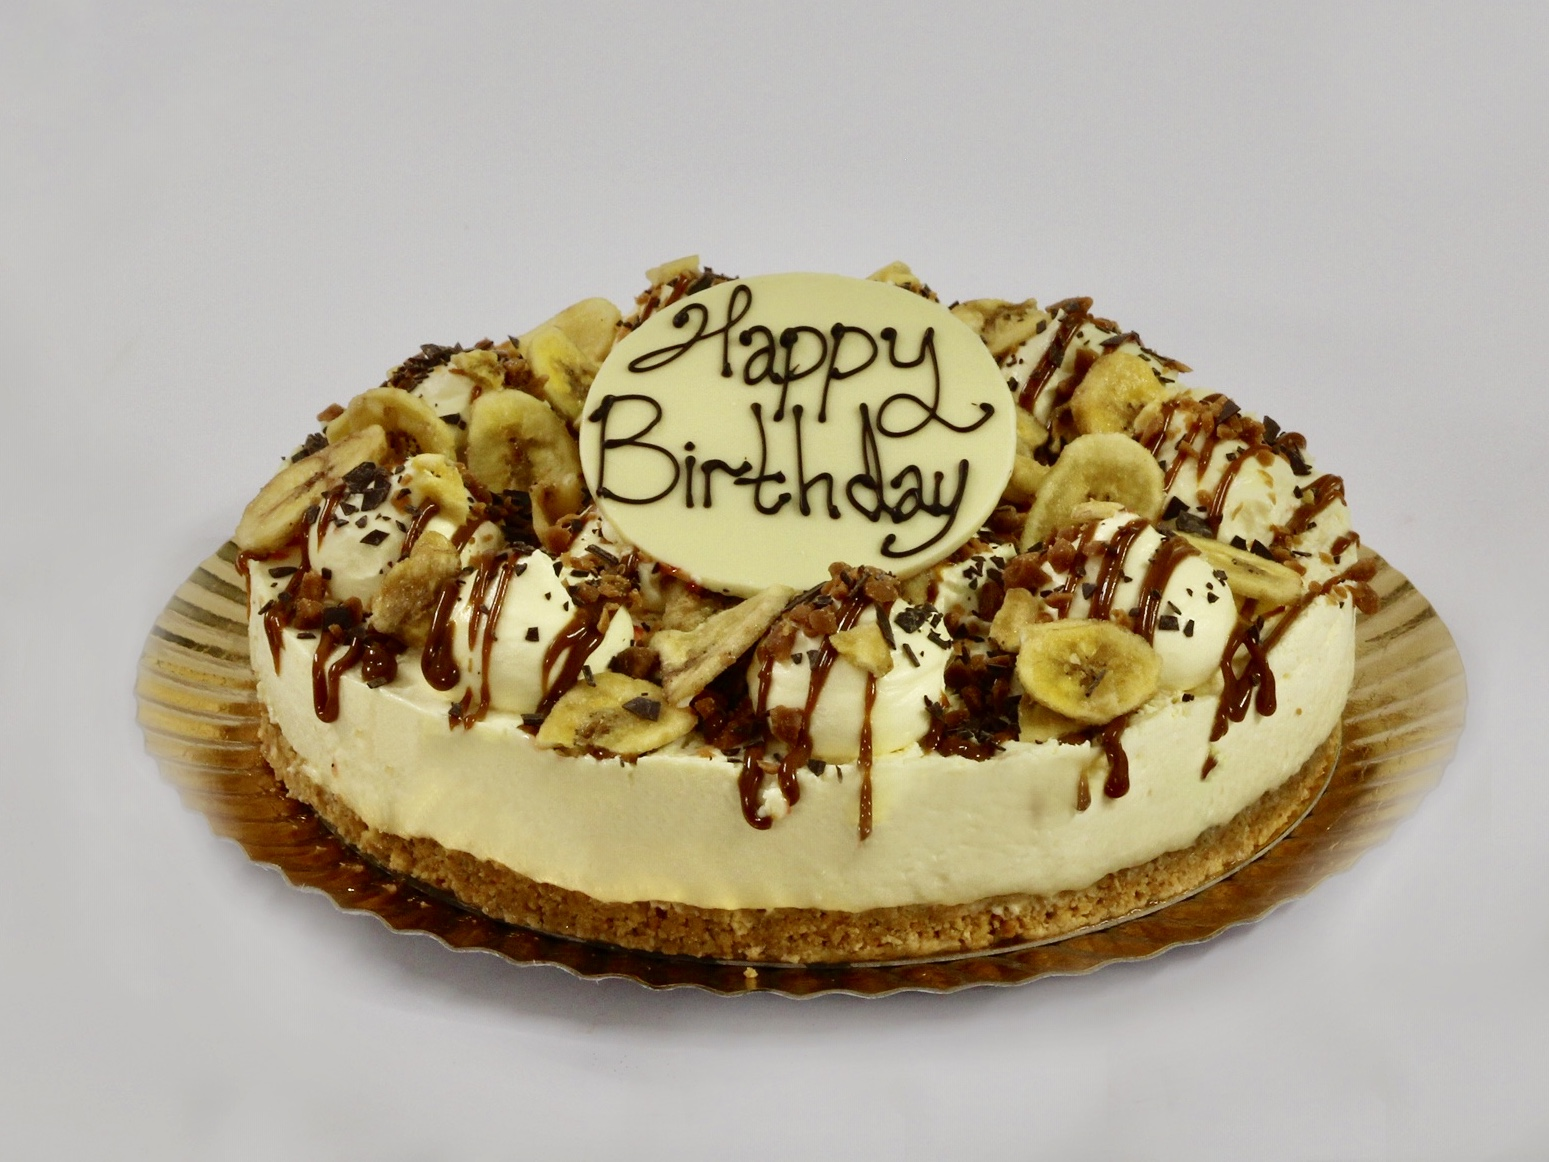 Celebration Cakes - Banoffee Cheesecake